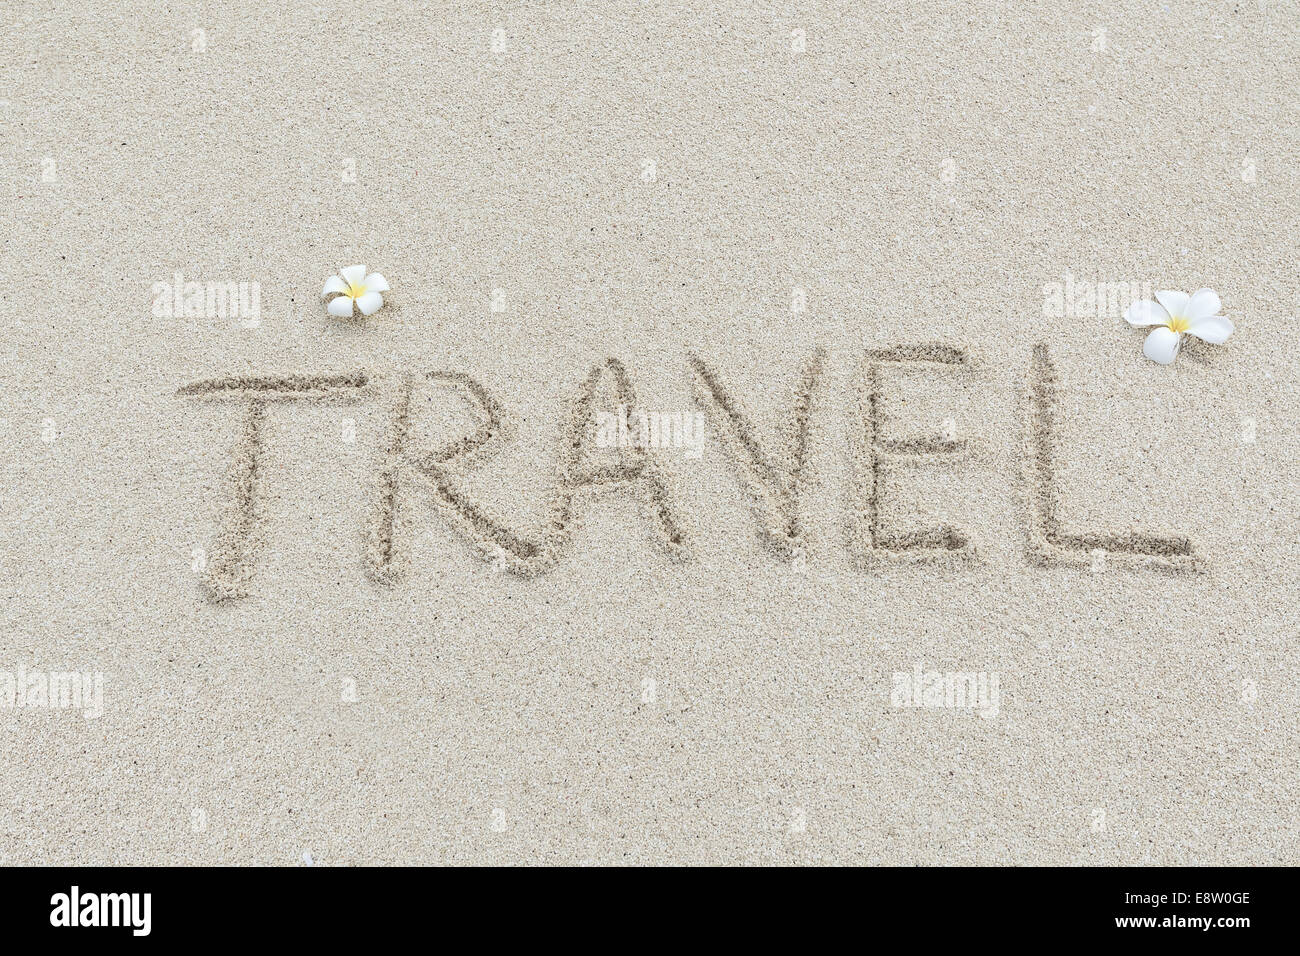 Travel written on the sandy beach - Stock Image